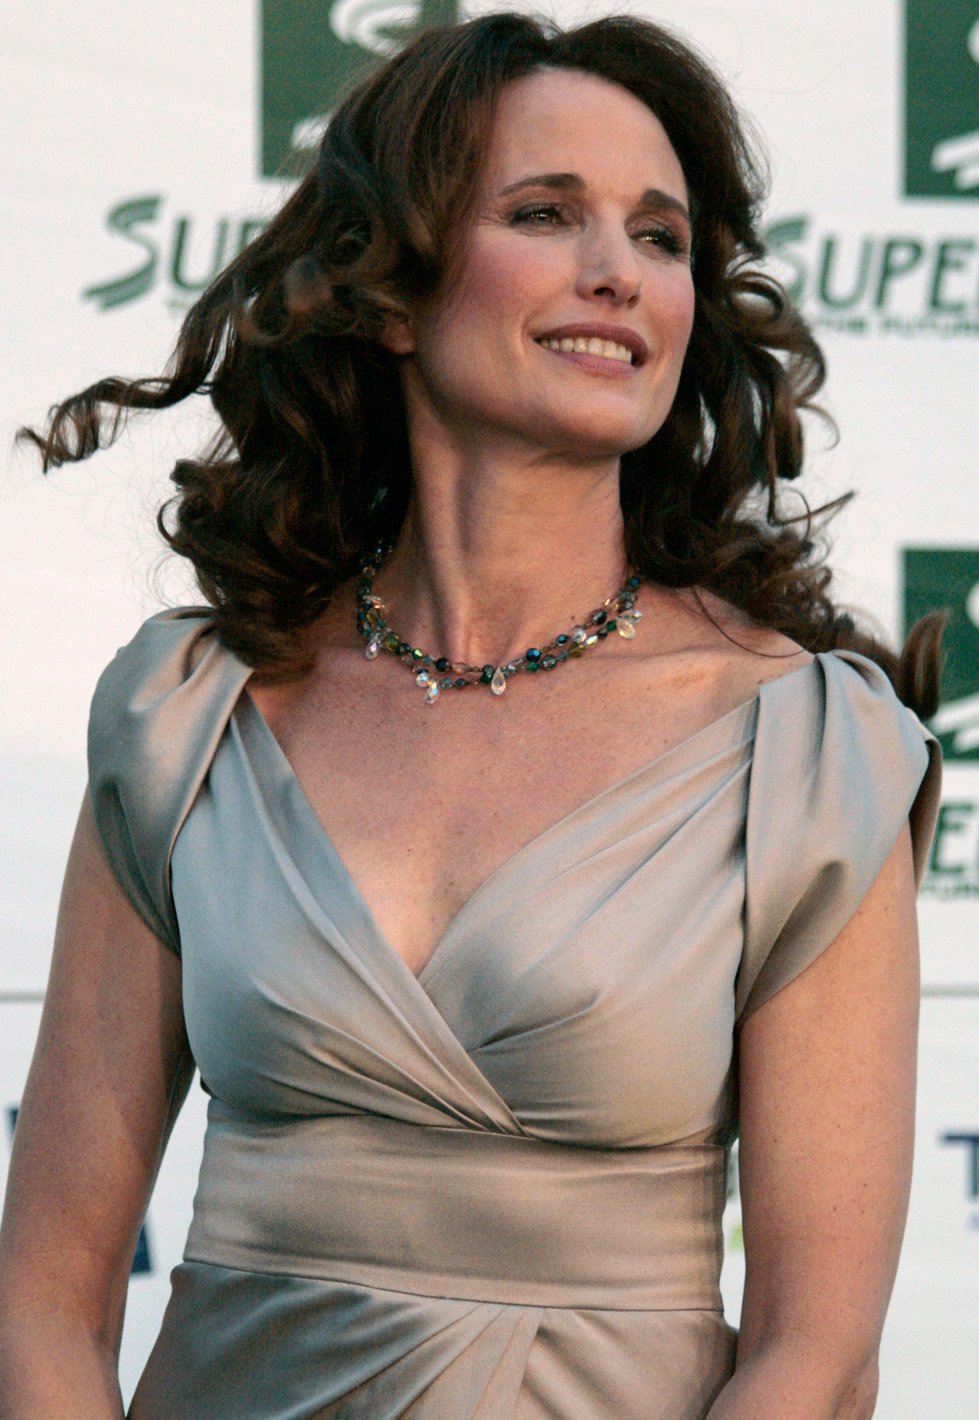 Andie Macdowell Foto file:save the world awards 2009 show07 - andie macdowell